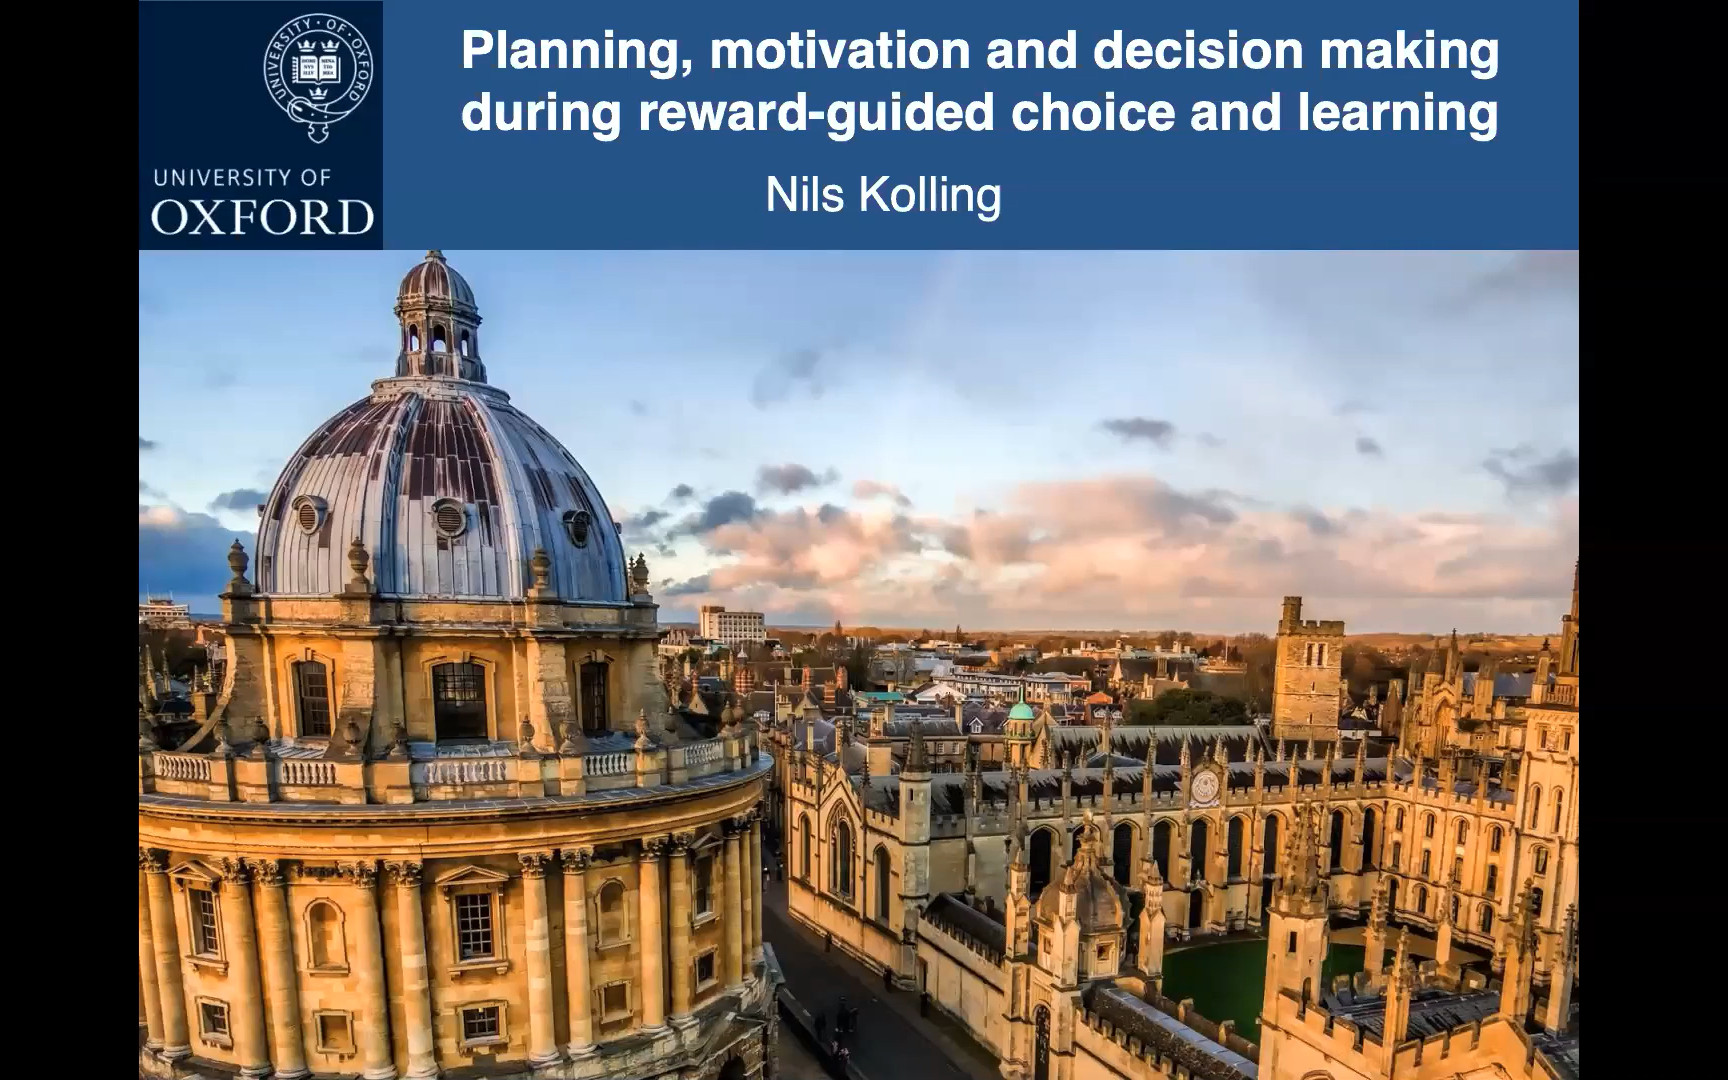 Planning, motivation and decision making during reward-guided choice and learning